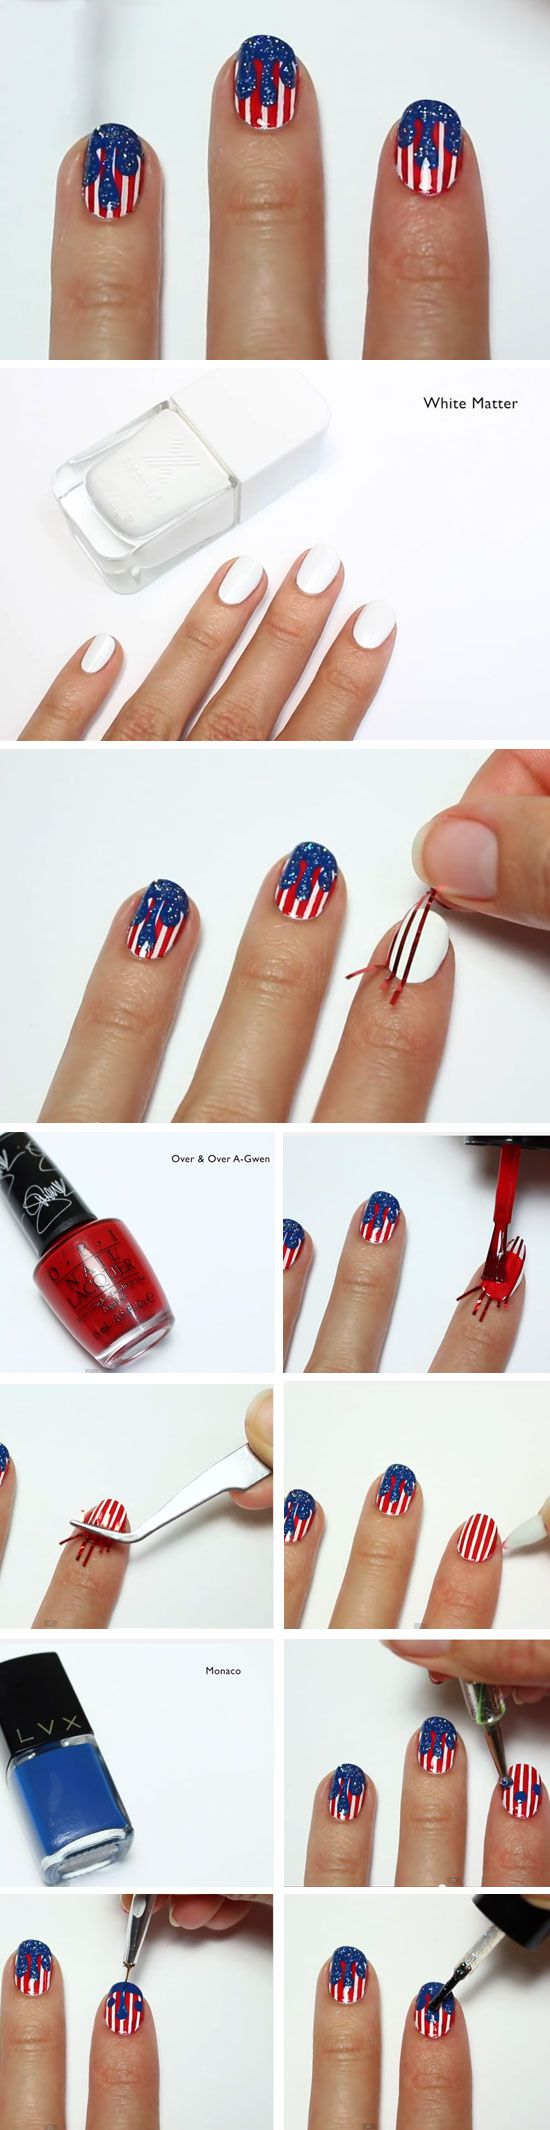 413 best Nails images on Pinterest | Nail art designs, Nails design ...